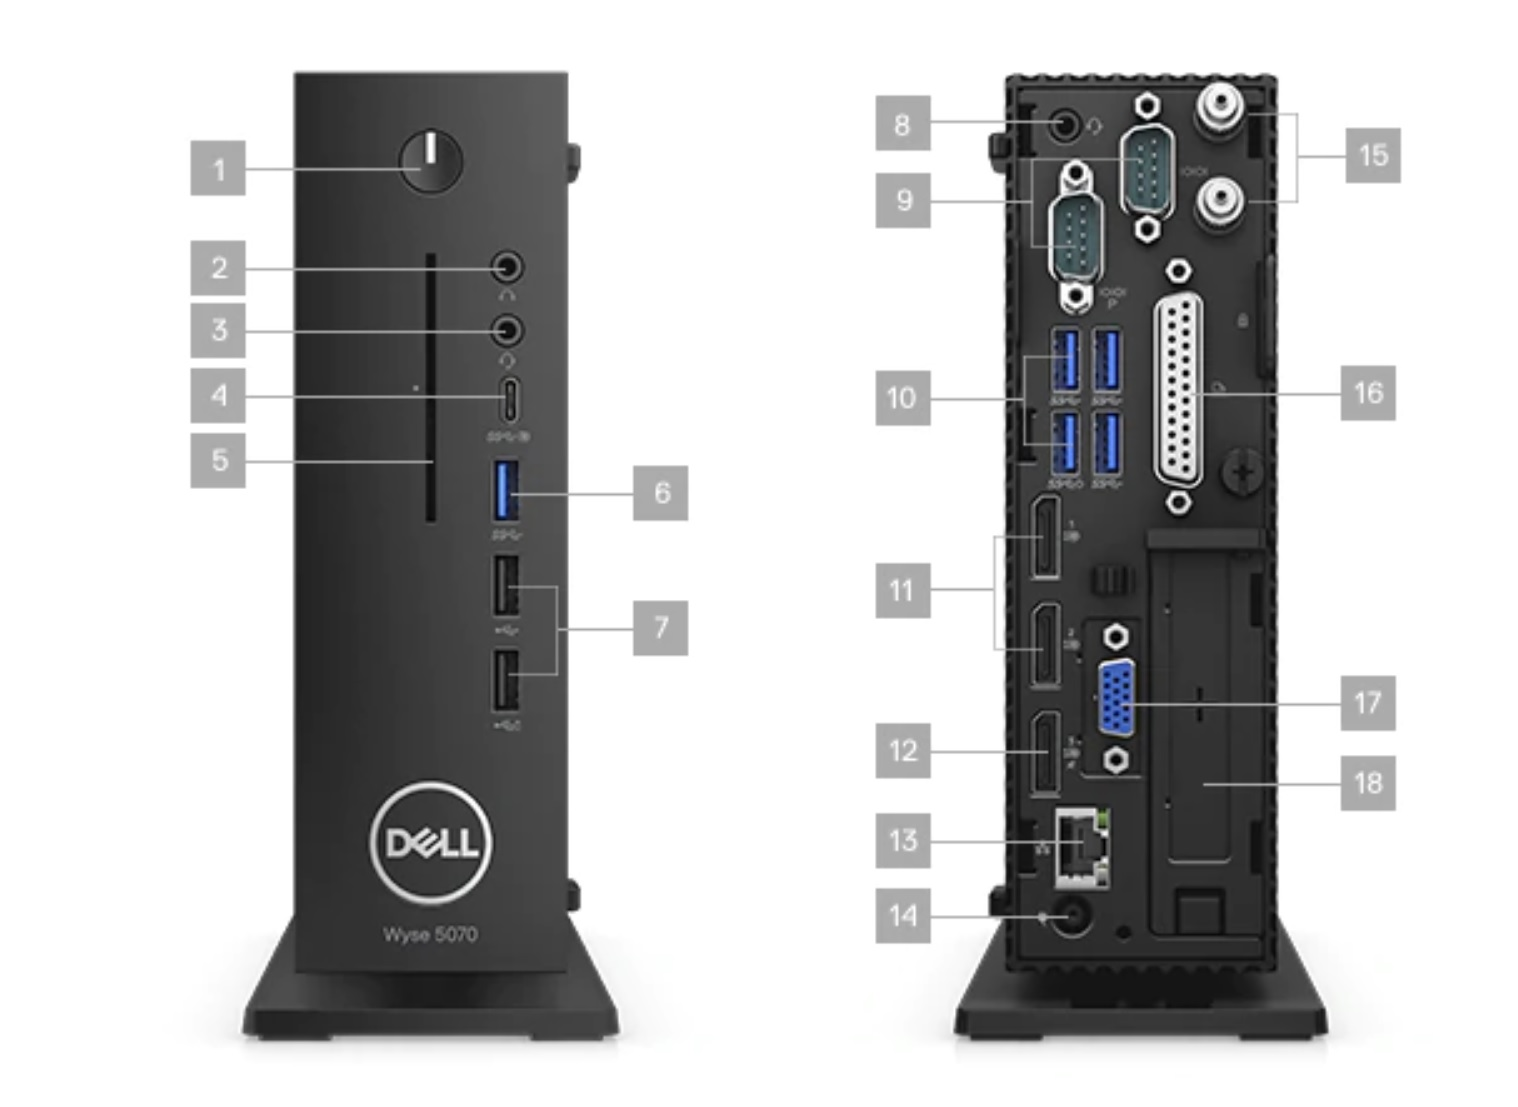 Dell Wyse 5070 Celeron Thin Client with Linux - Wyse Thinlinux 2 0